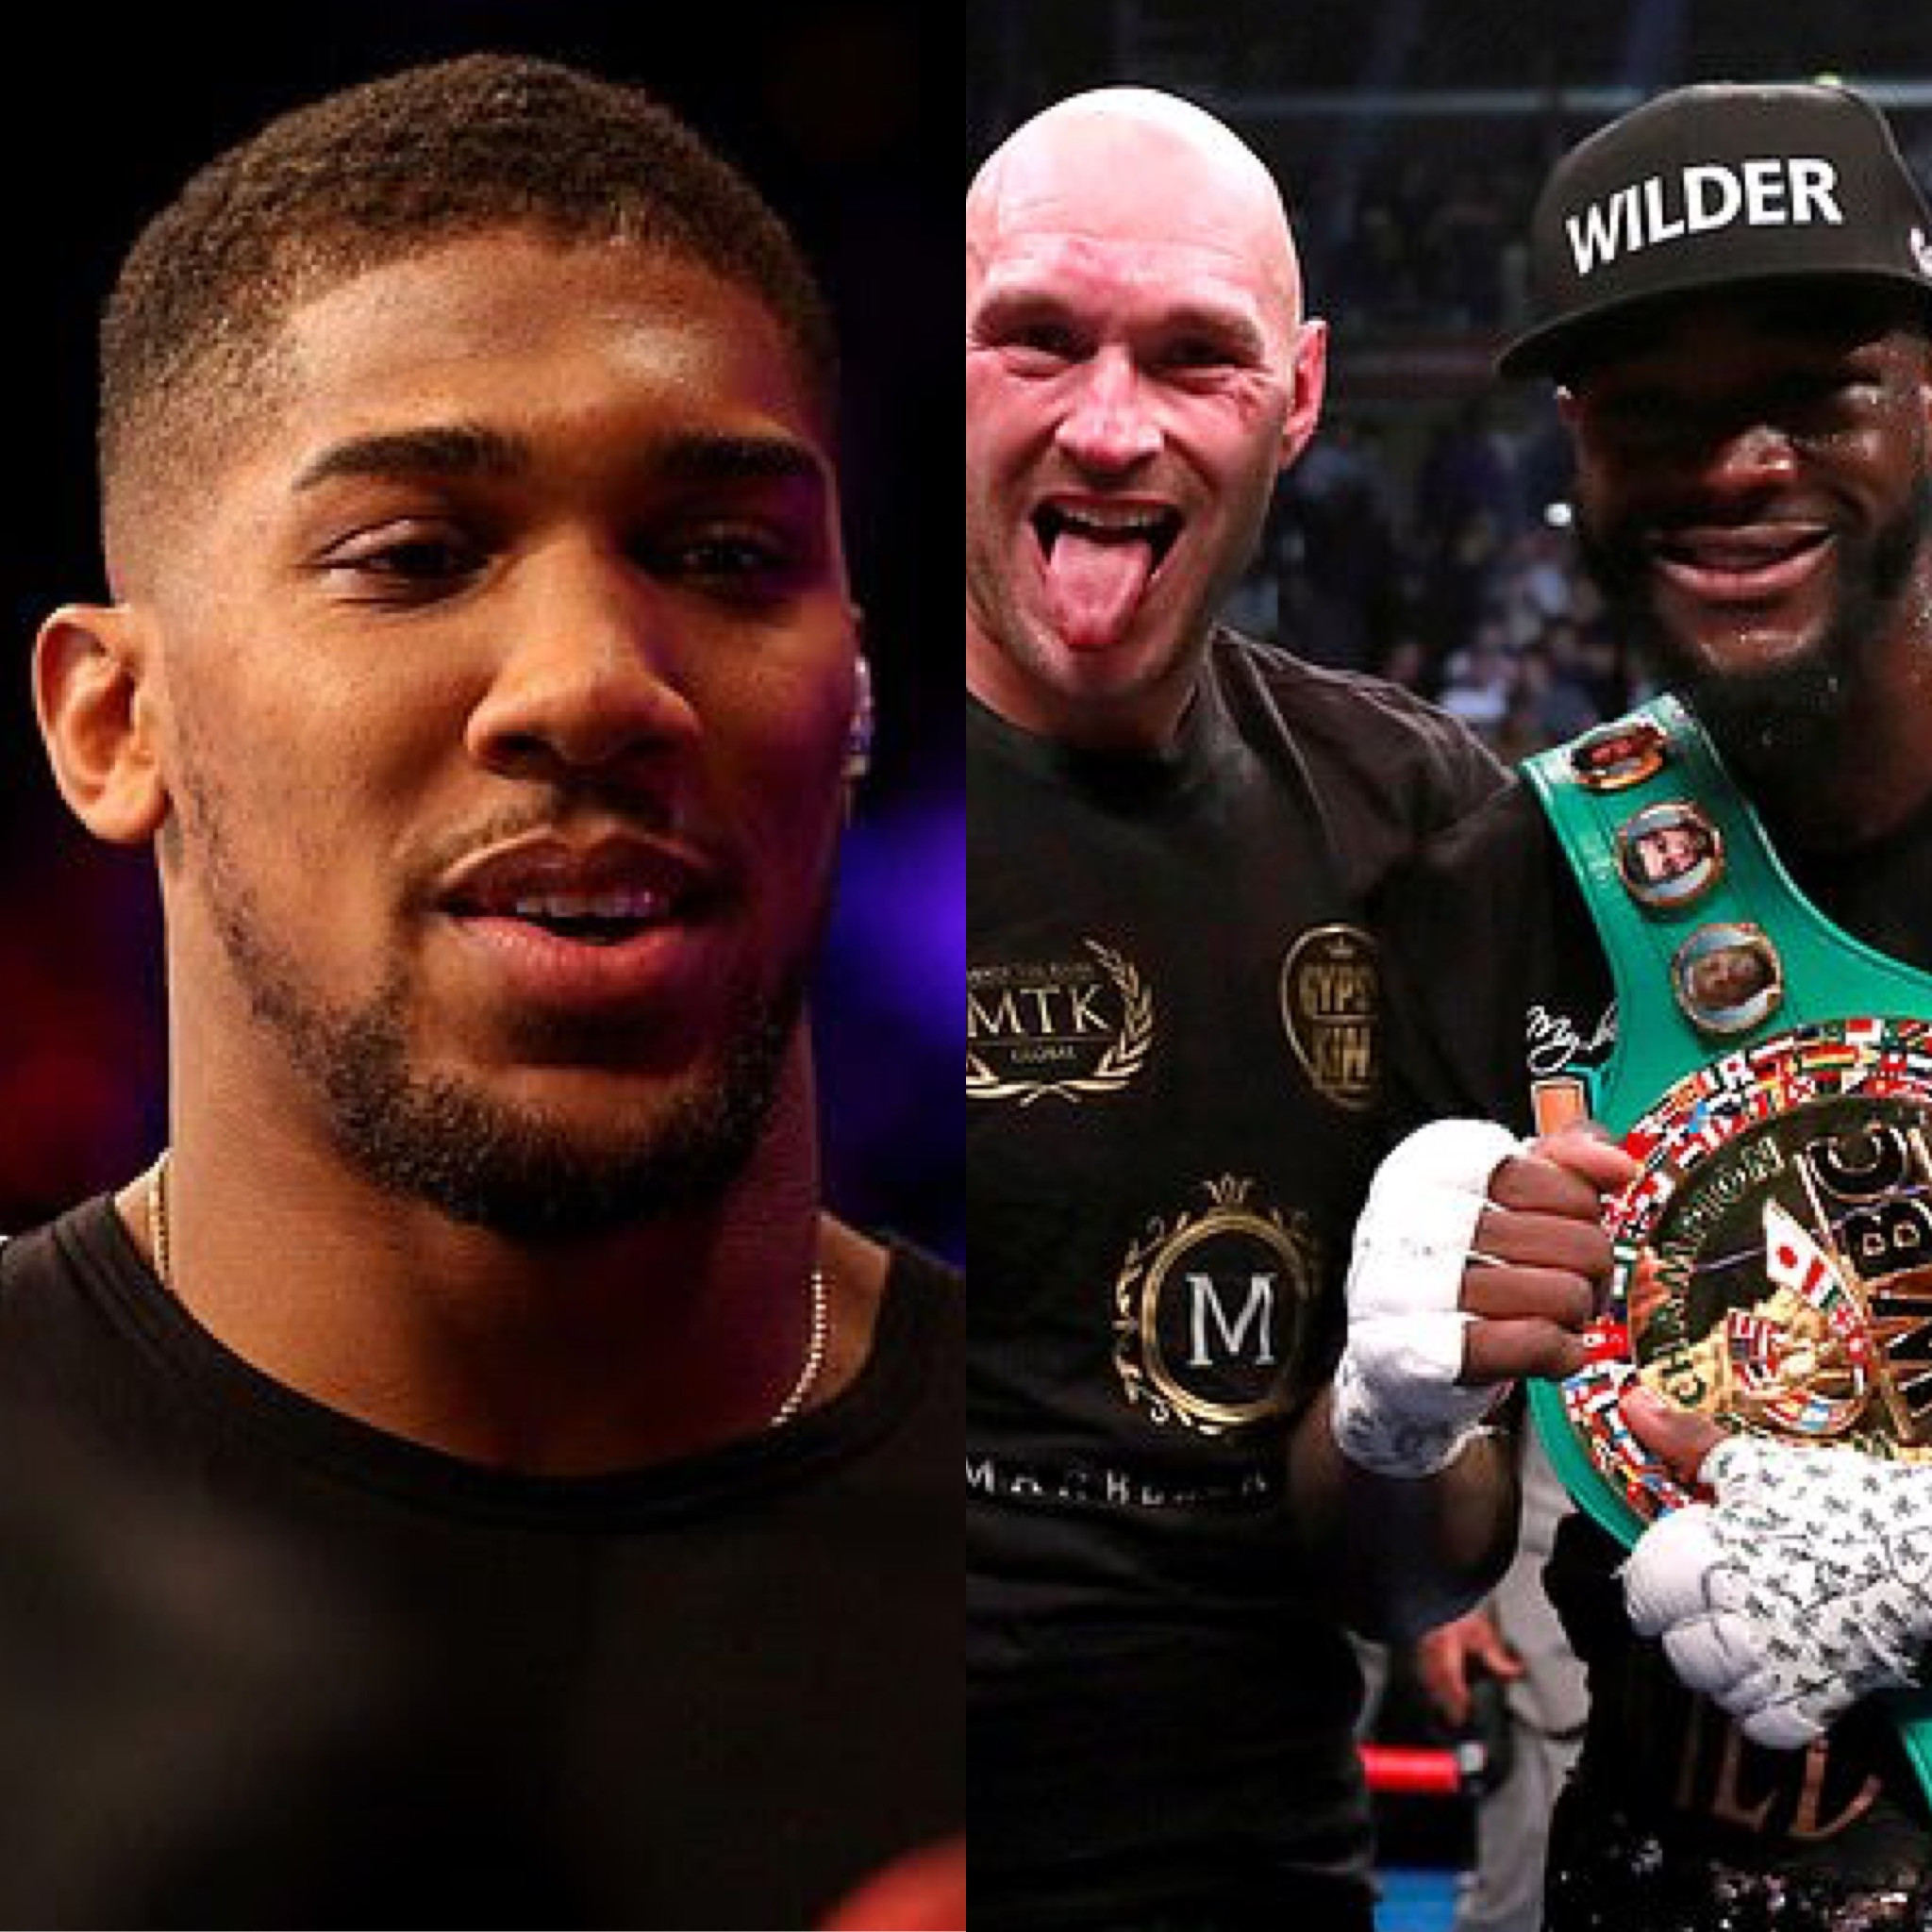 'Deontay Wilder and Tyson Fury: if you think you can beat Anthony Joshua, come get him' – AJ's manager, Eddie Hearn, pleads ahead of 10 day deadline